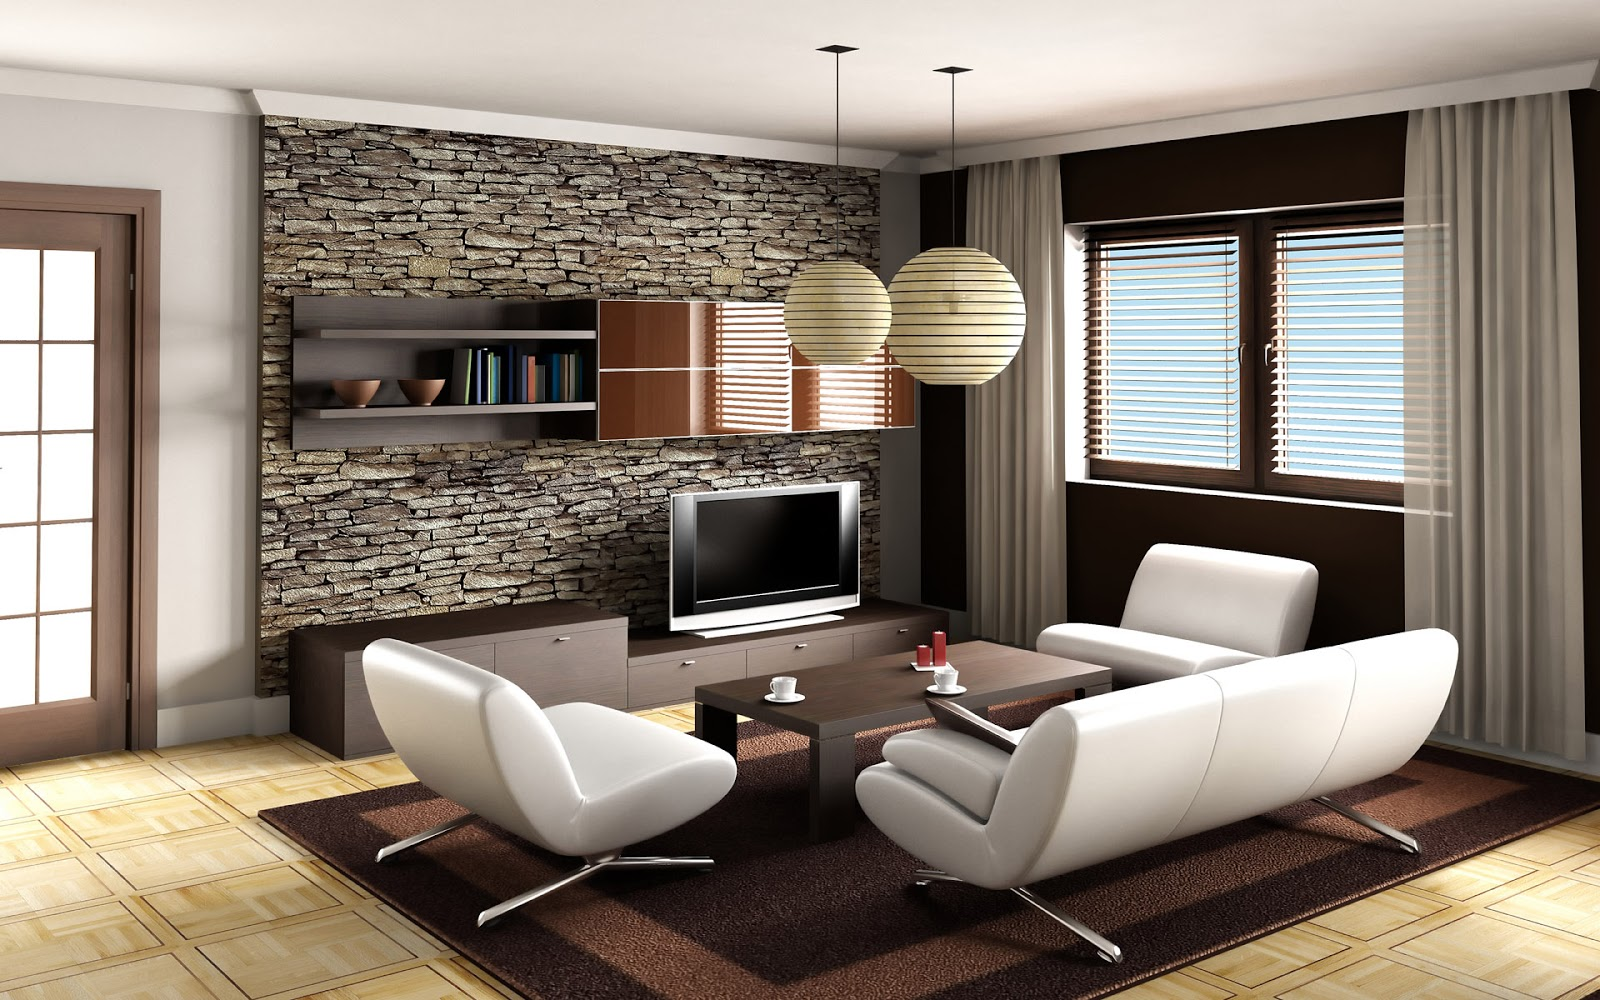 Arrangement of luxury living room ideas dream house for Simple living room decor